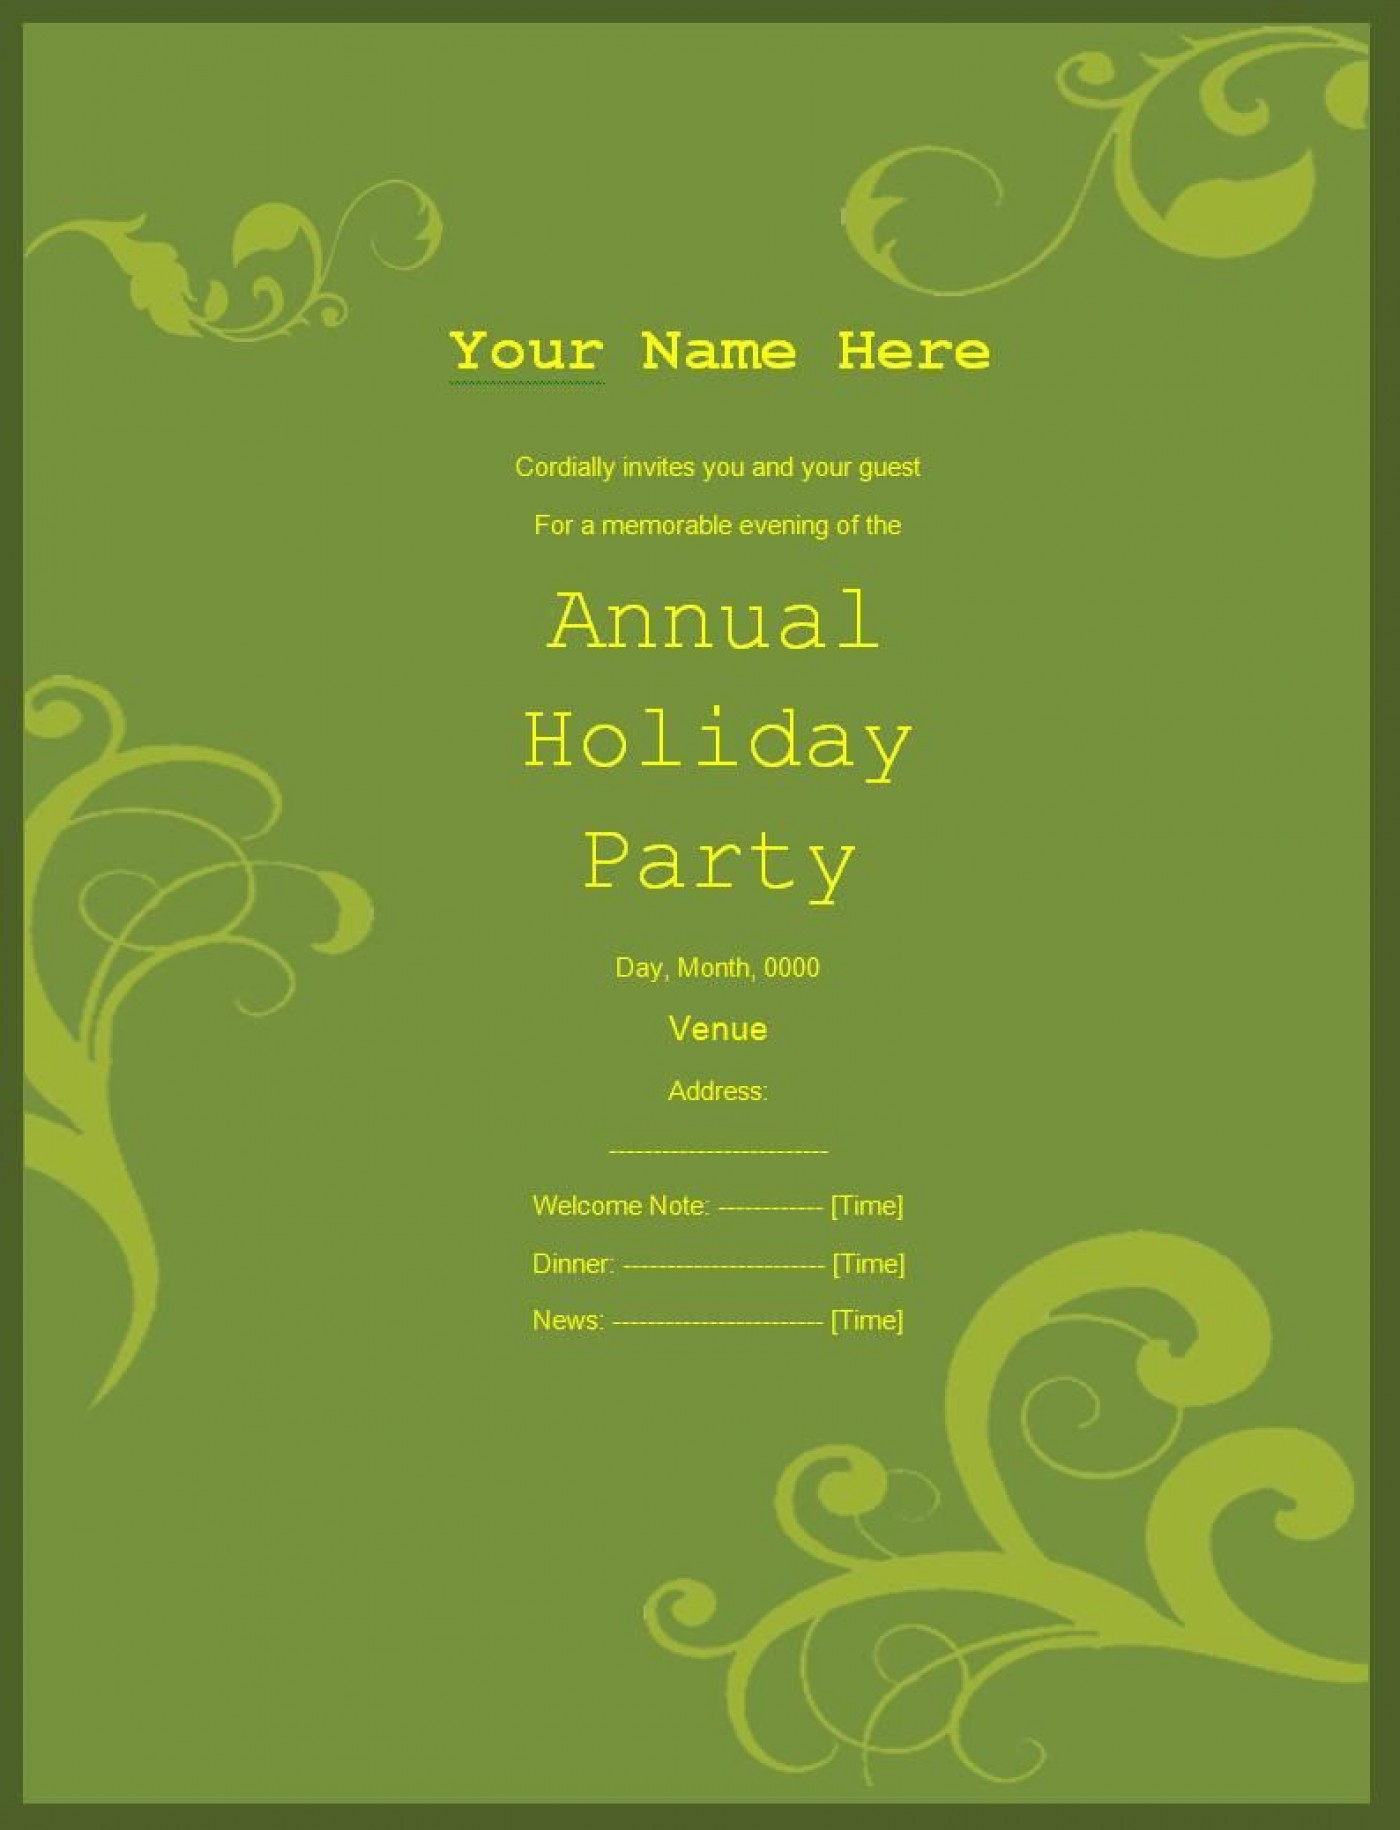 009 Shocking Retirement Party Invite Template Word Free Example 1400